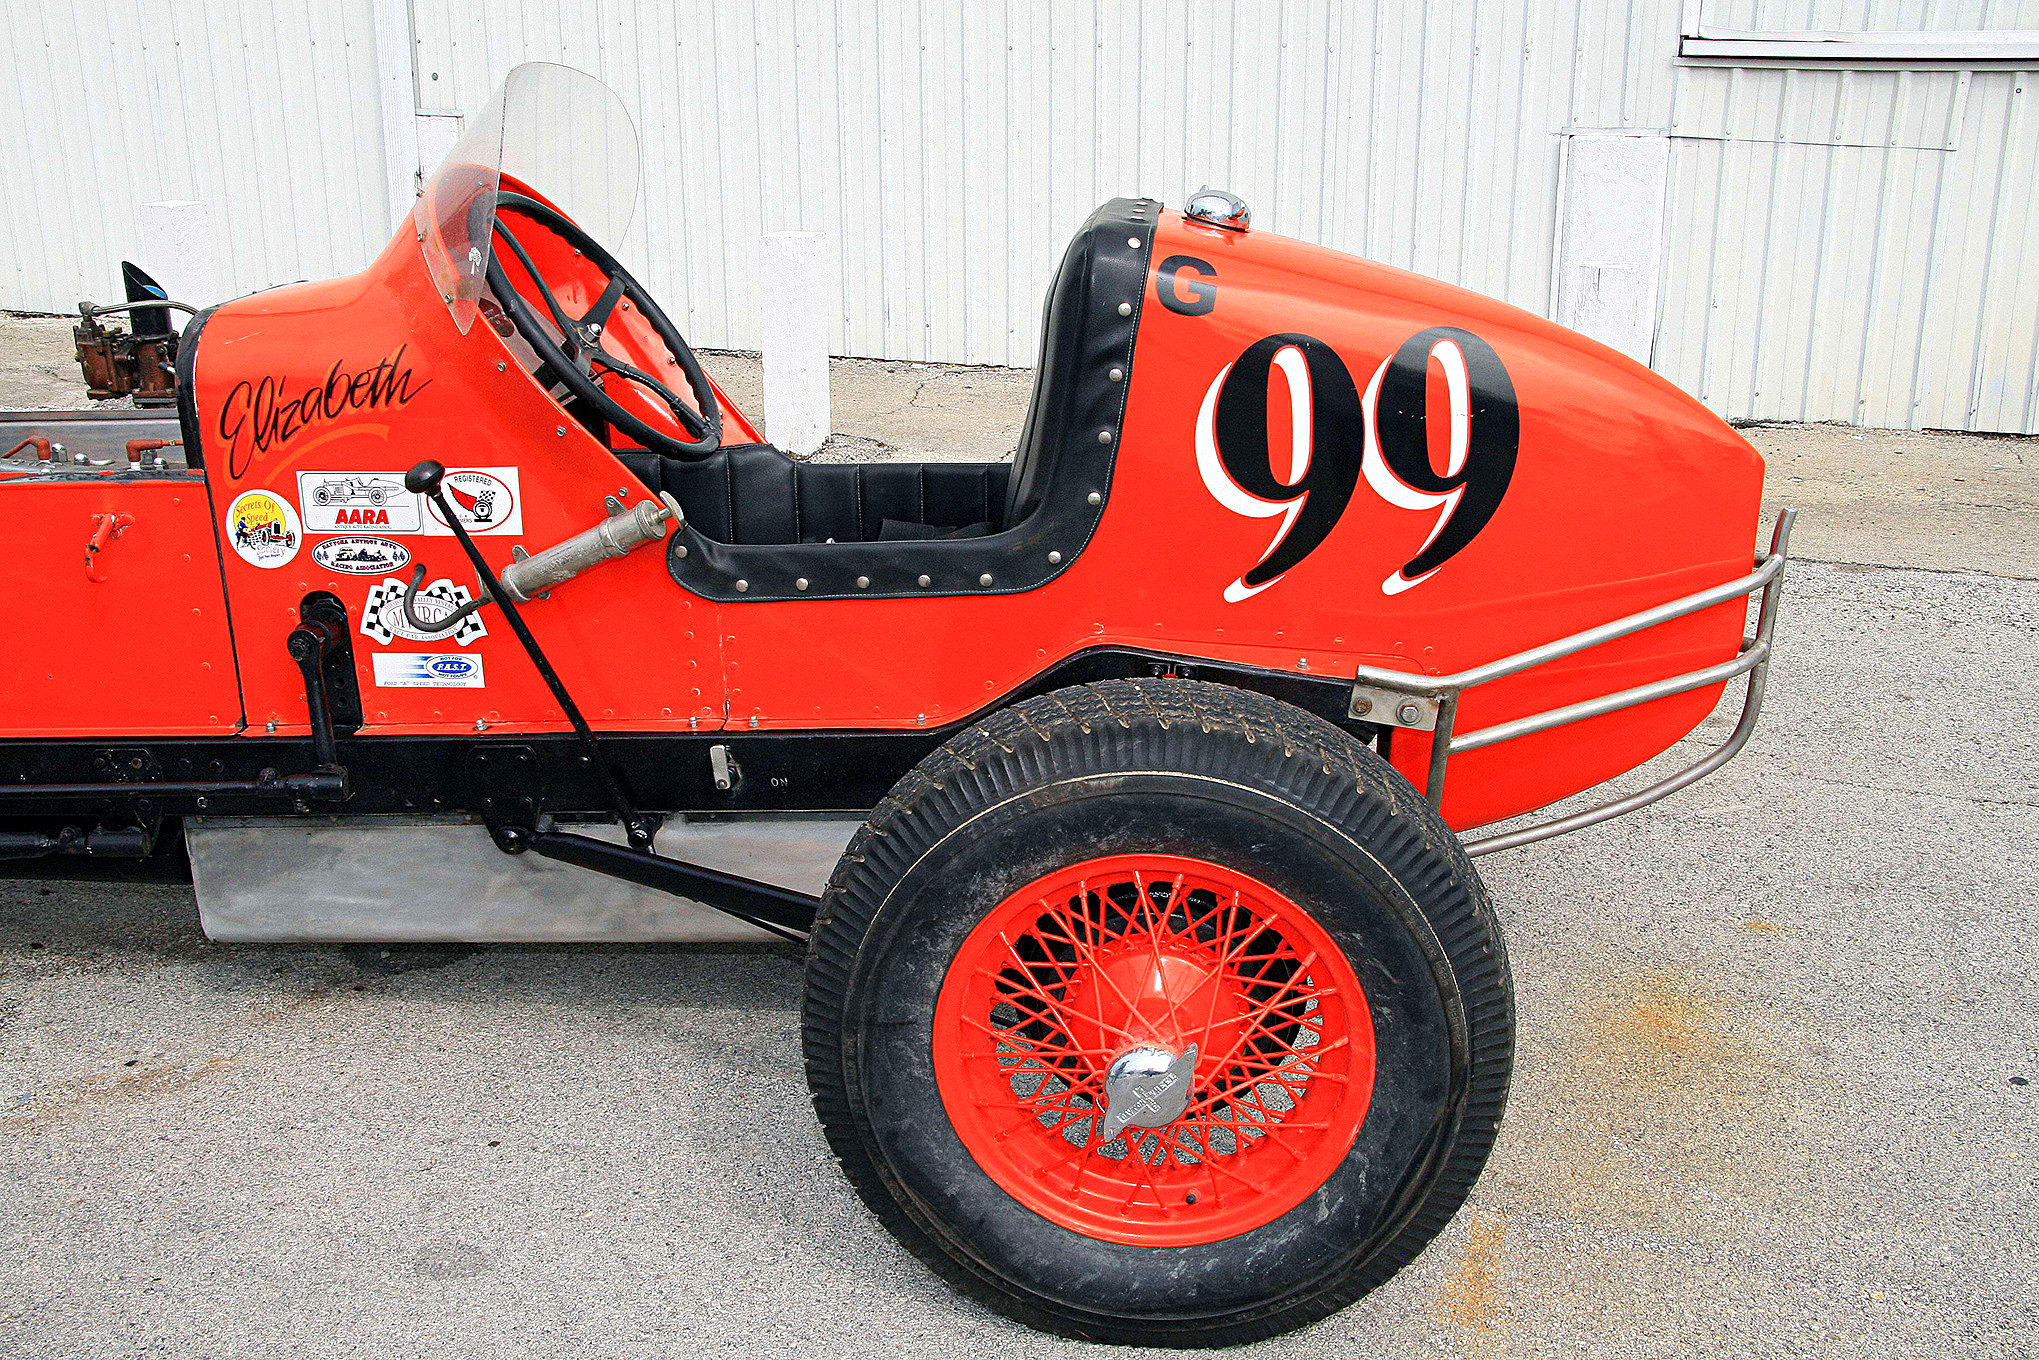 1930 Sprint Car High Quality Background on Wallpapers Vista